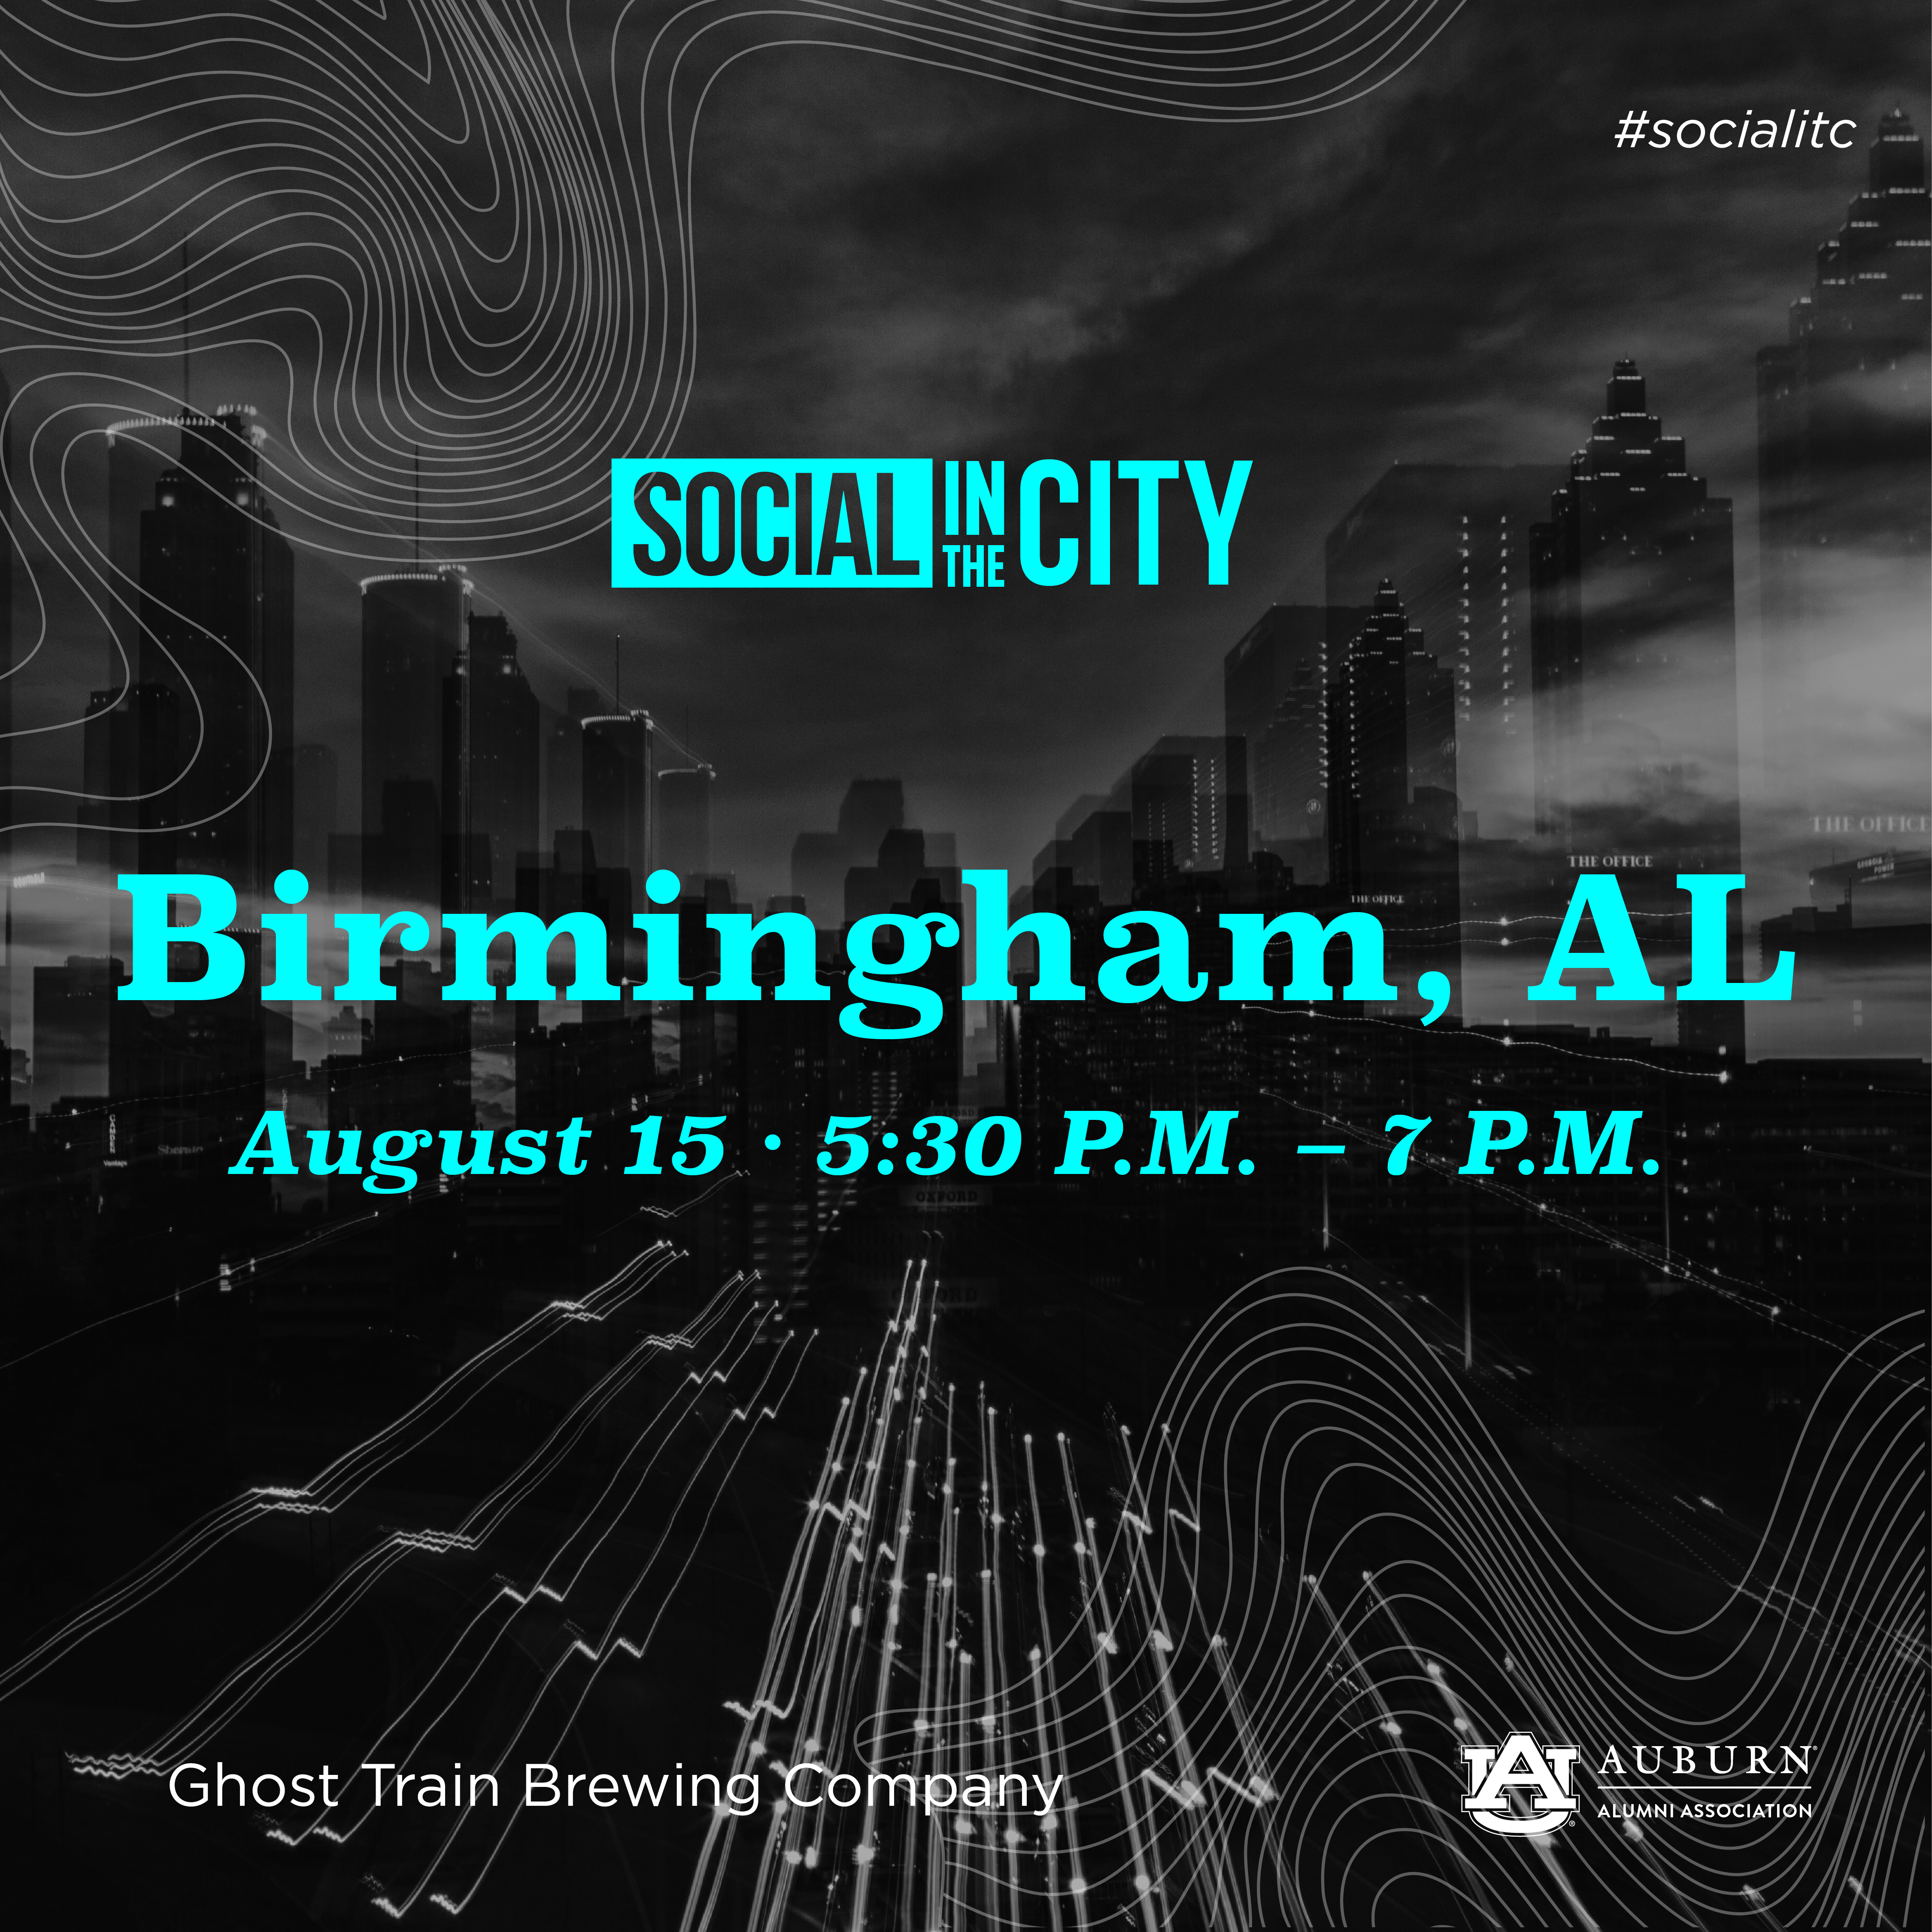 Social in the City - Birmingham